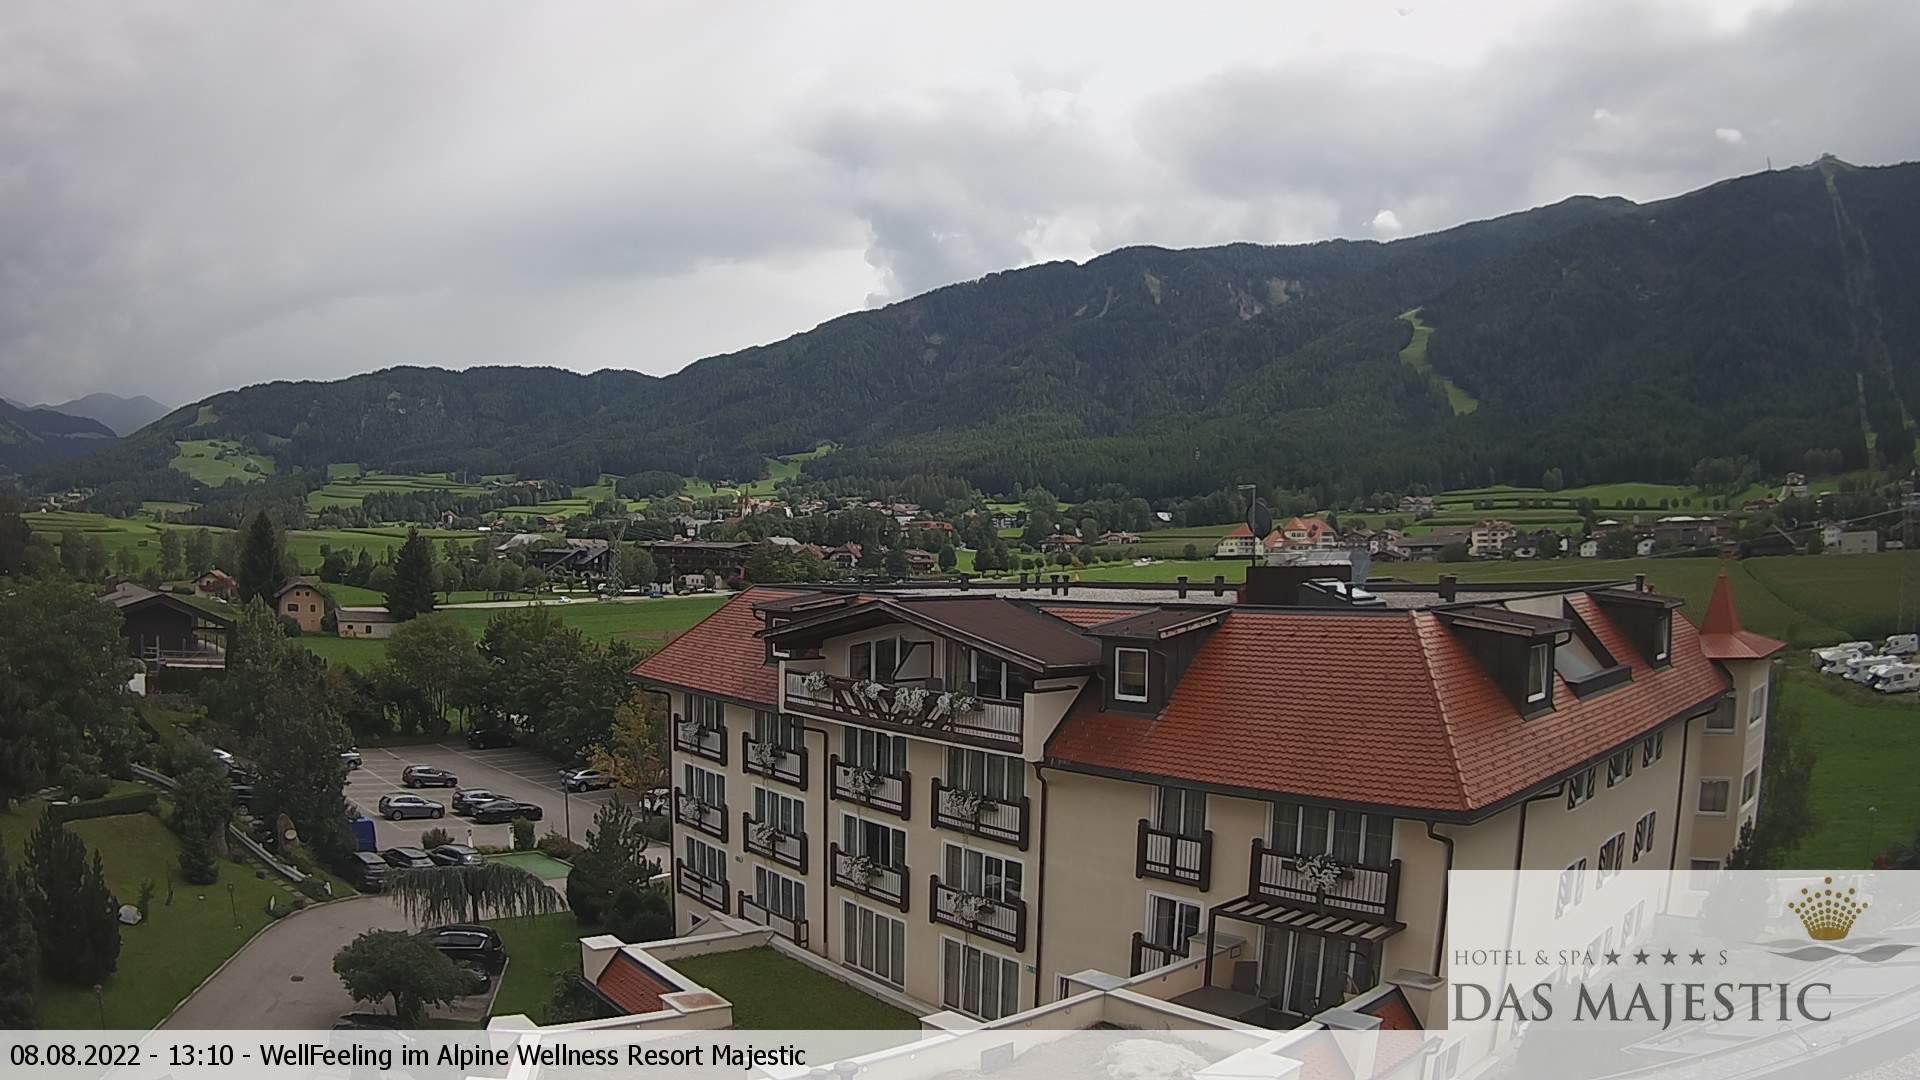 Webcam Hotel Majestic in Reischach